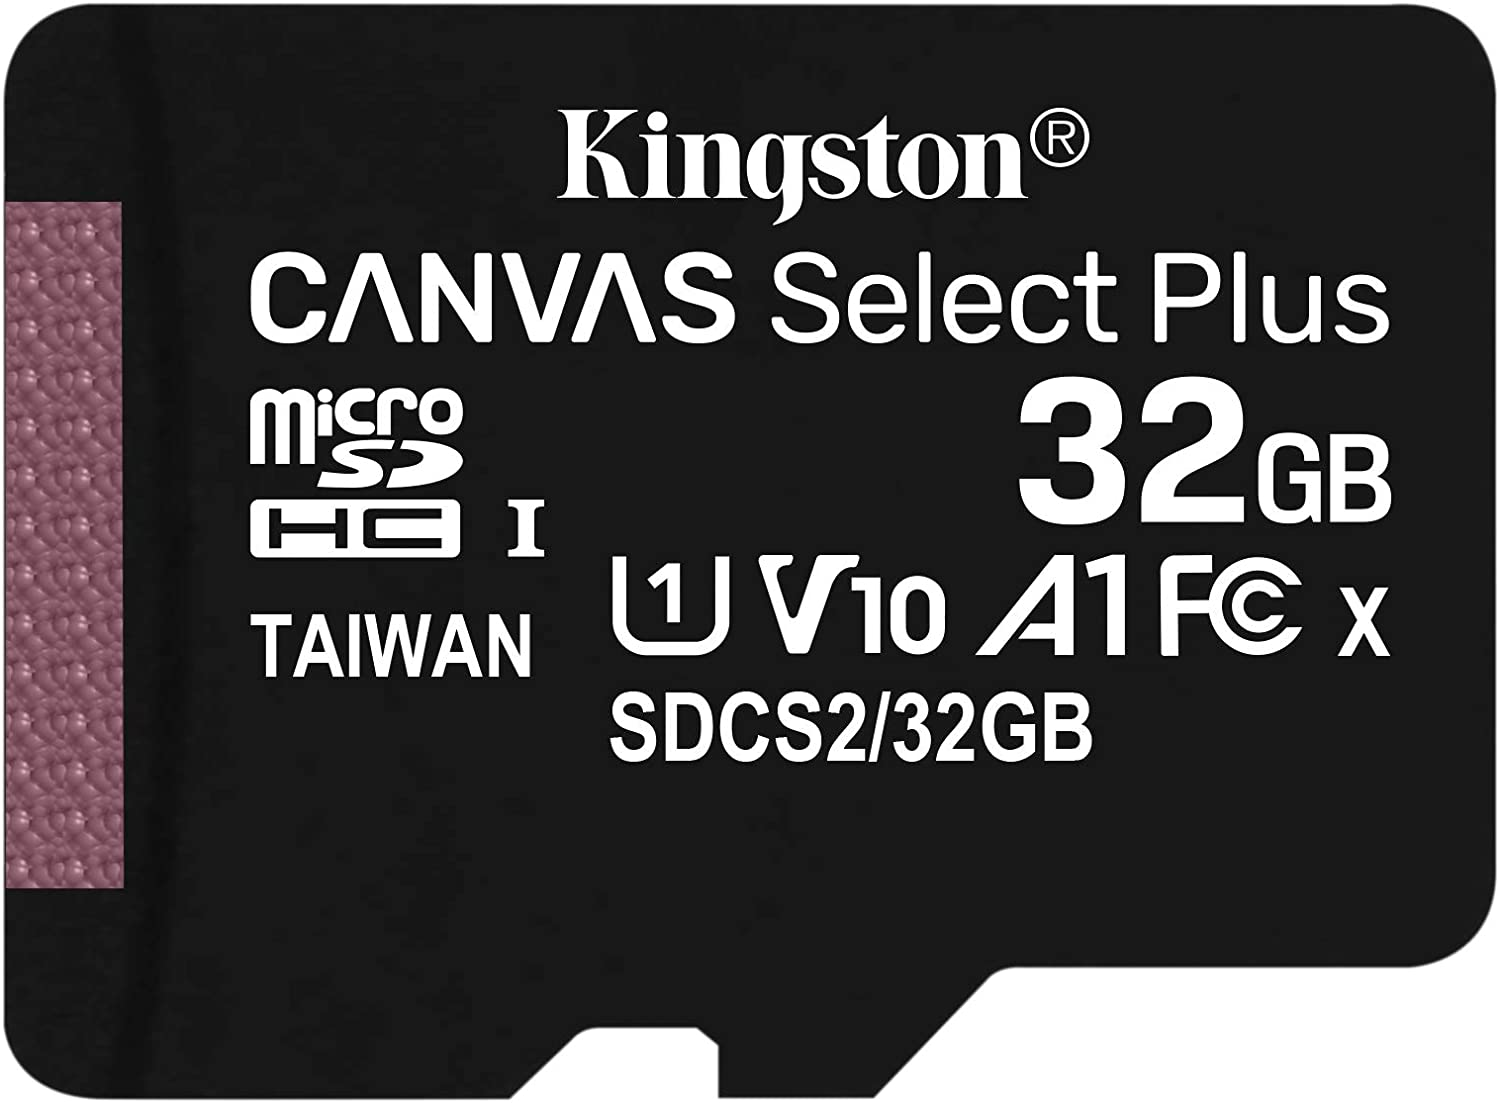 Kingston 32GB LG L65 MicroSDHC Canvas Select Plus Card Verified by SanFlash. 100MBs Works with Kingston